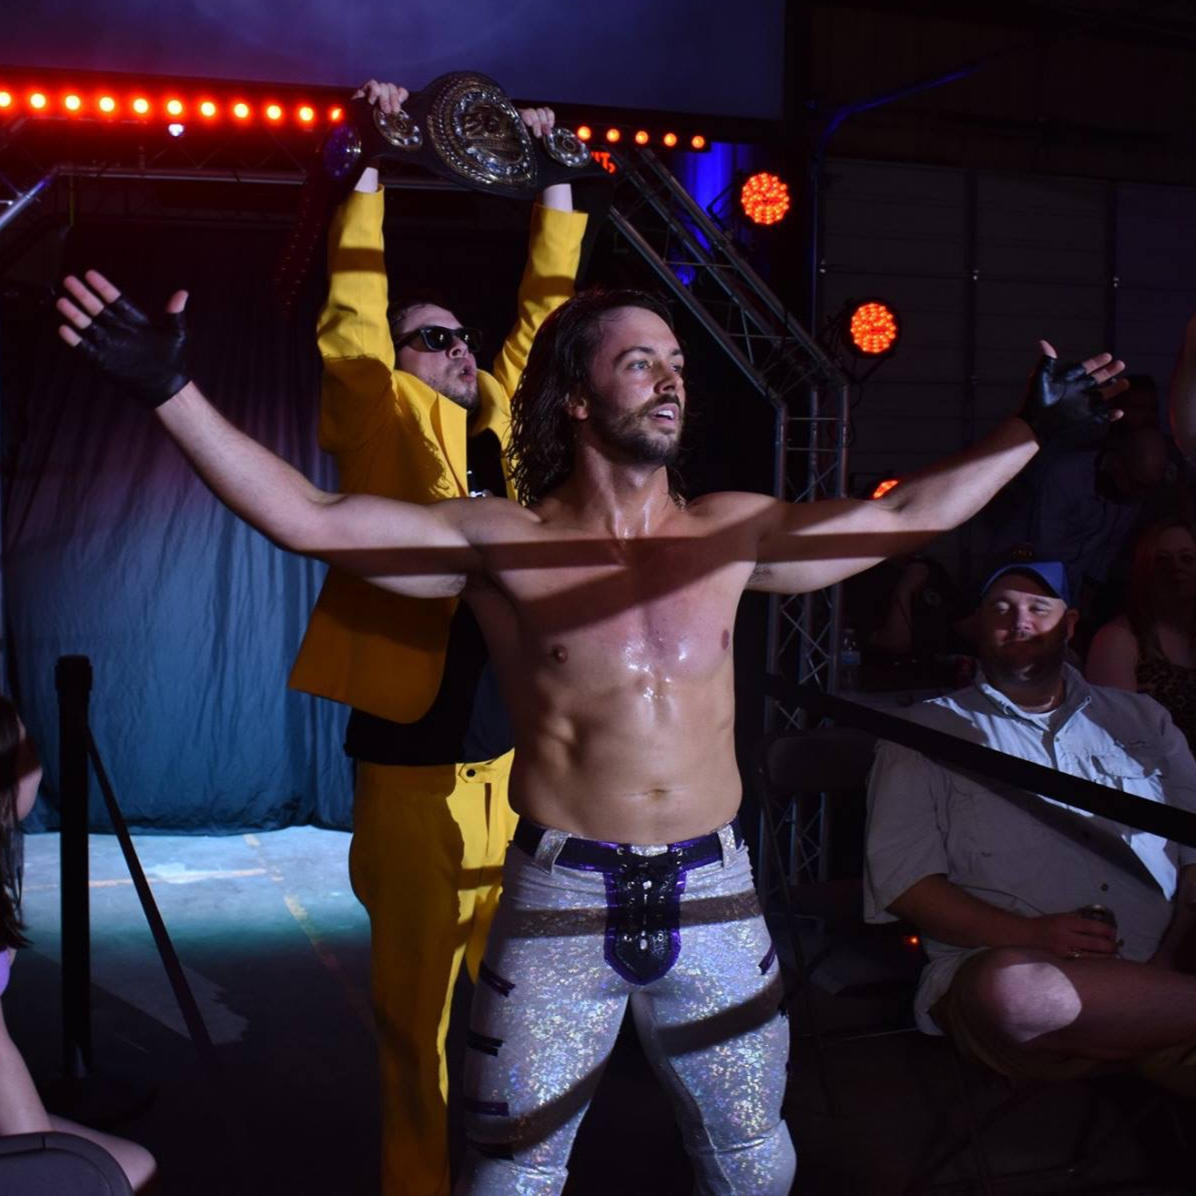 APRIL 5, 2019 - Will Allday celebrates winning the 360 Title with Chase Paradise in Bryan. (Sarah Jarvis England)